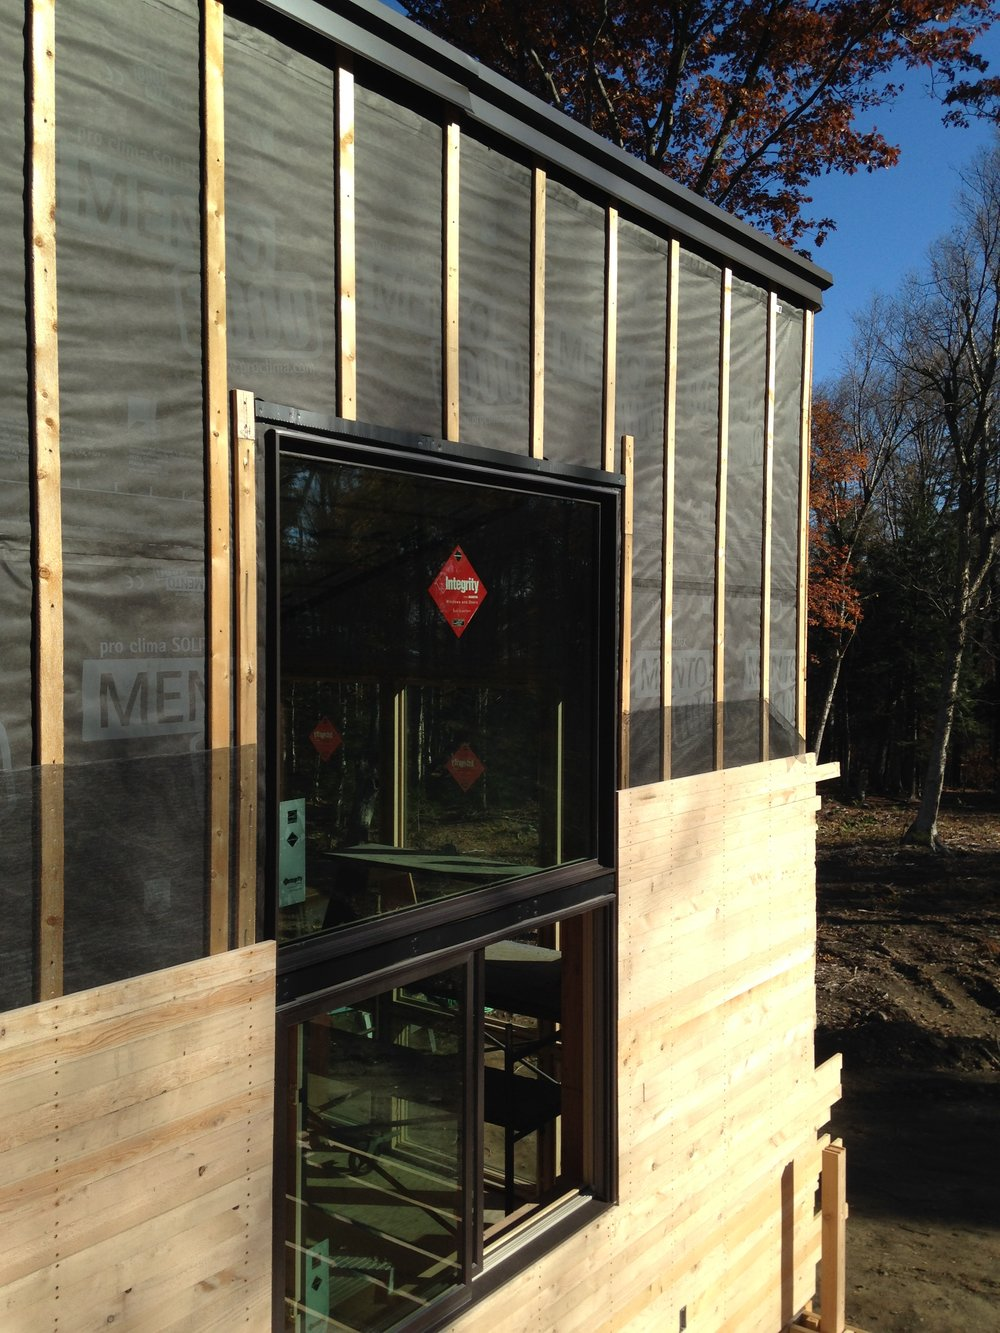 Installation over rainscreen and Mento weather resistant barrier from  FourSevenFive.com